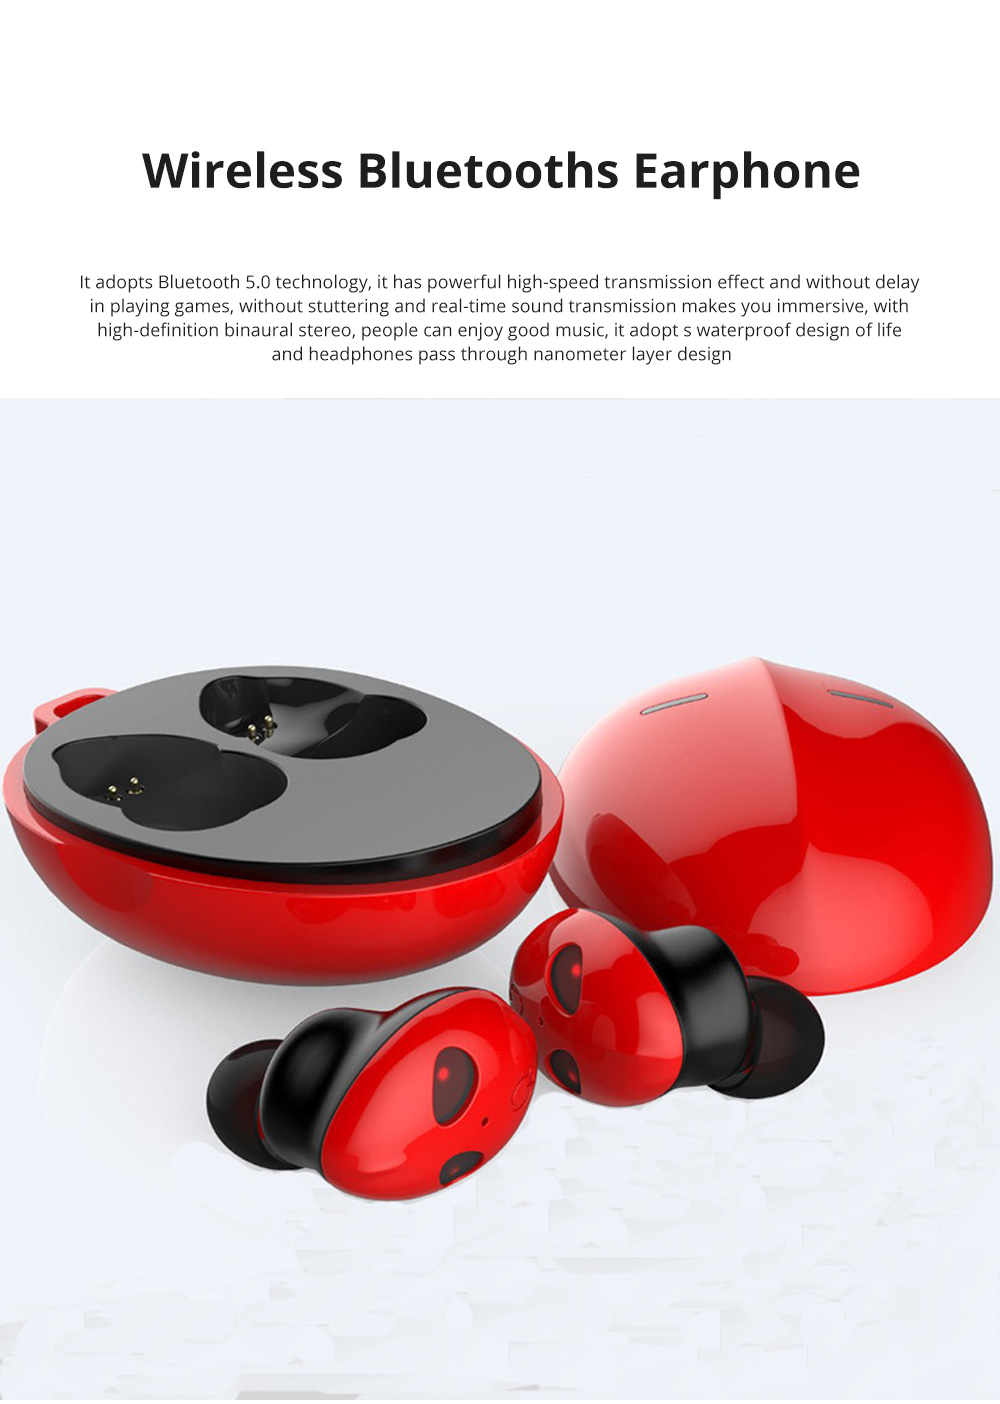 Alien Smart Touch Unique Cavity Structure Mini In Ear Earpiece Hands Free Wireless Bluetooths Earphone Earbuds For Gaming 0